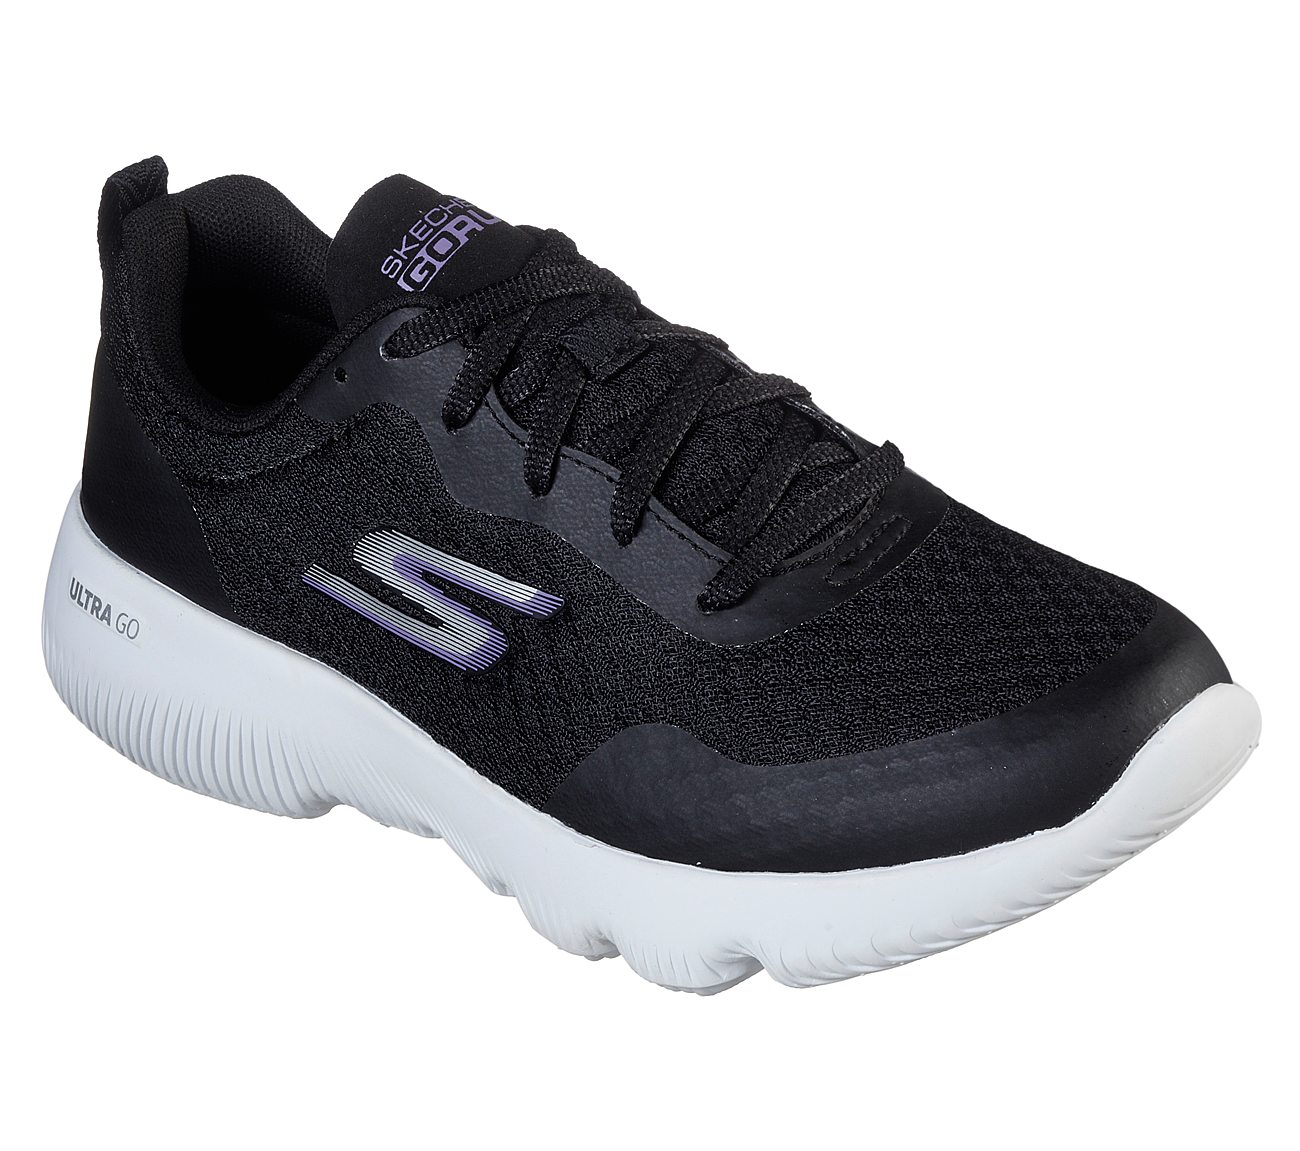 Skechers GOrun Focus - Instantly